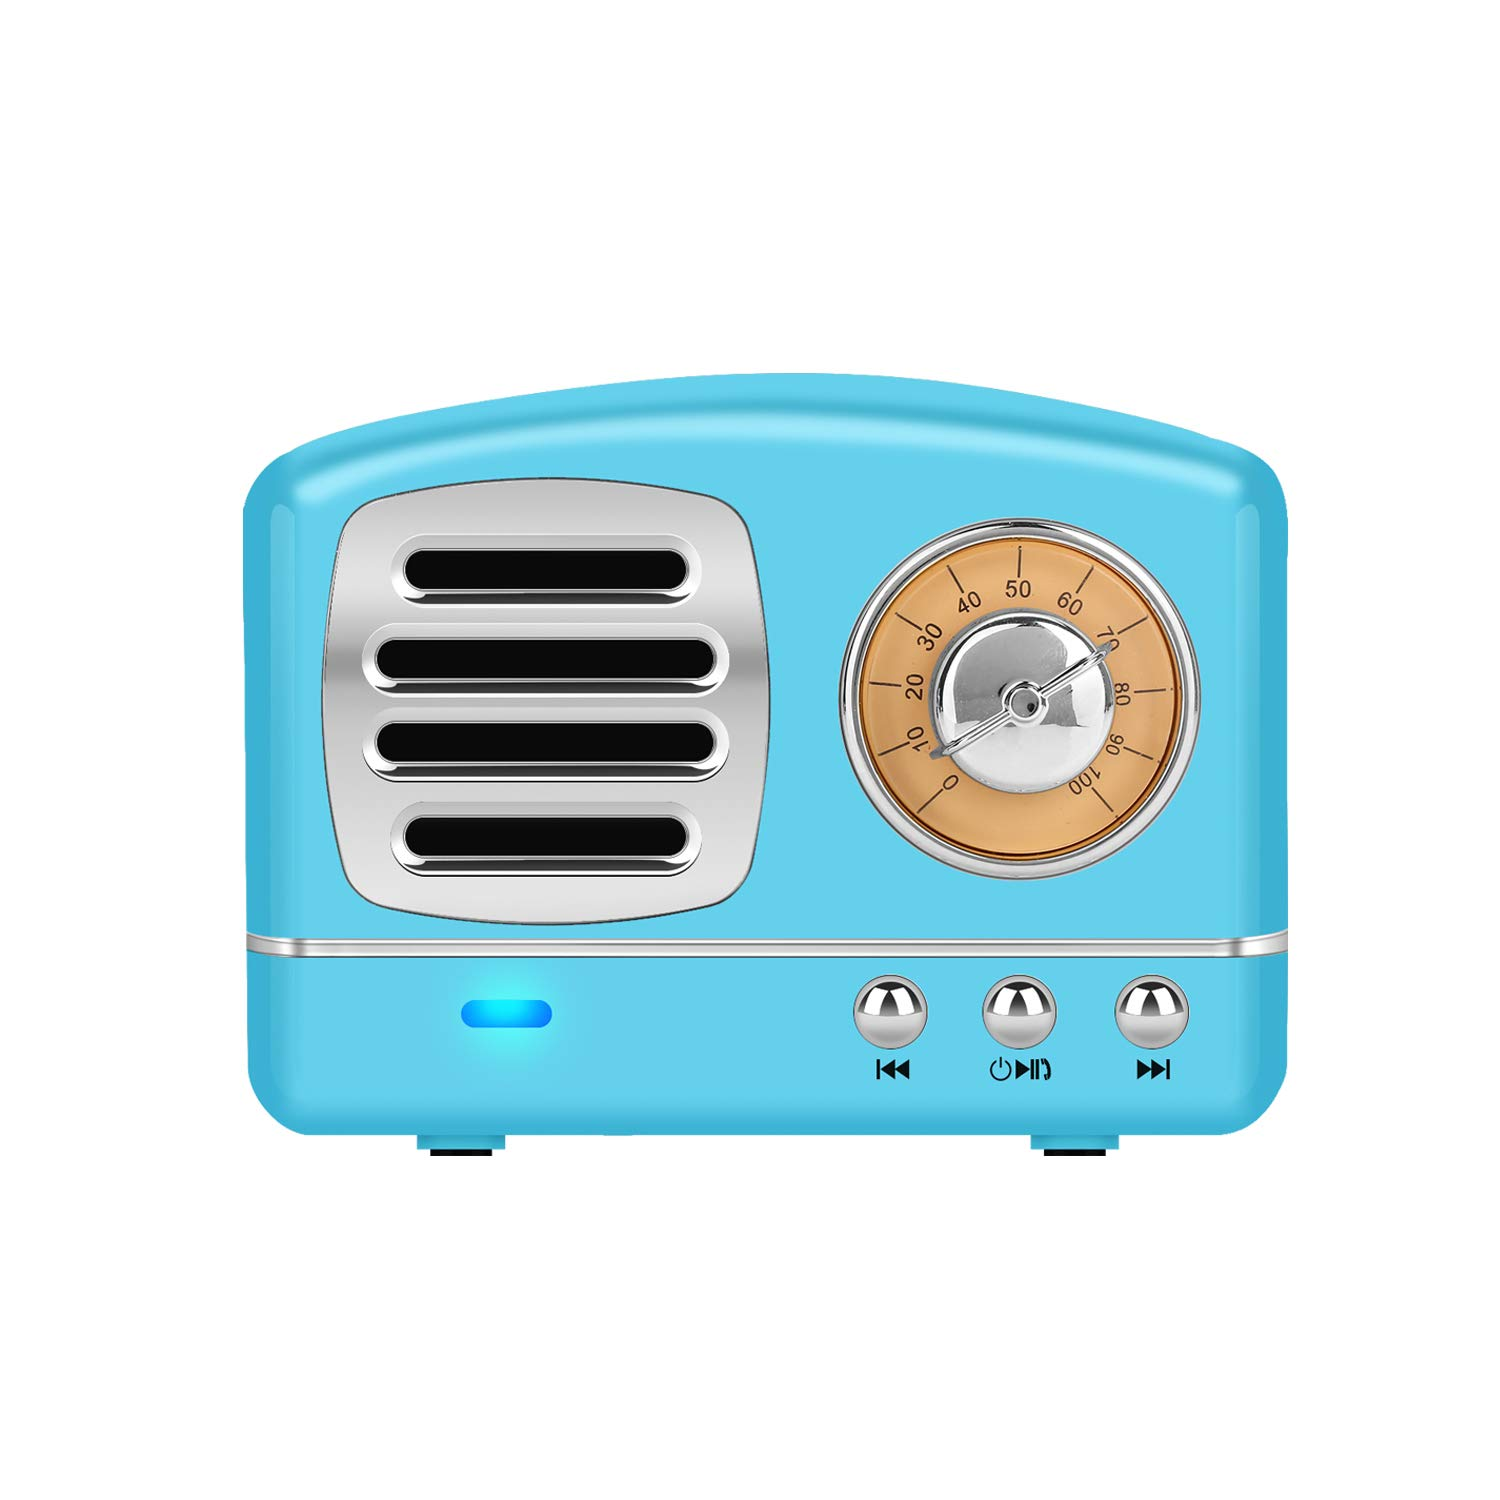 Dosmix Wireless Stereo Retro Speakers, Portable Bluetooth Vintage Speakers with Powerful Sound, Hands-Free Calls, Alexa Support, TF Card, AUX for Kitchen Bedrooms Party Outdoor Android iOS Blue